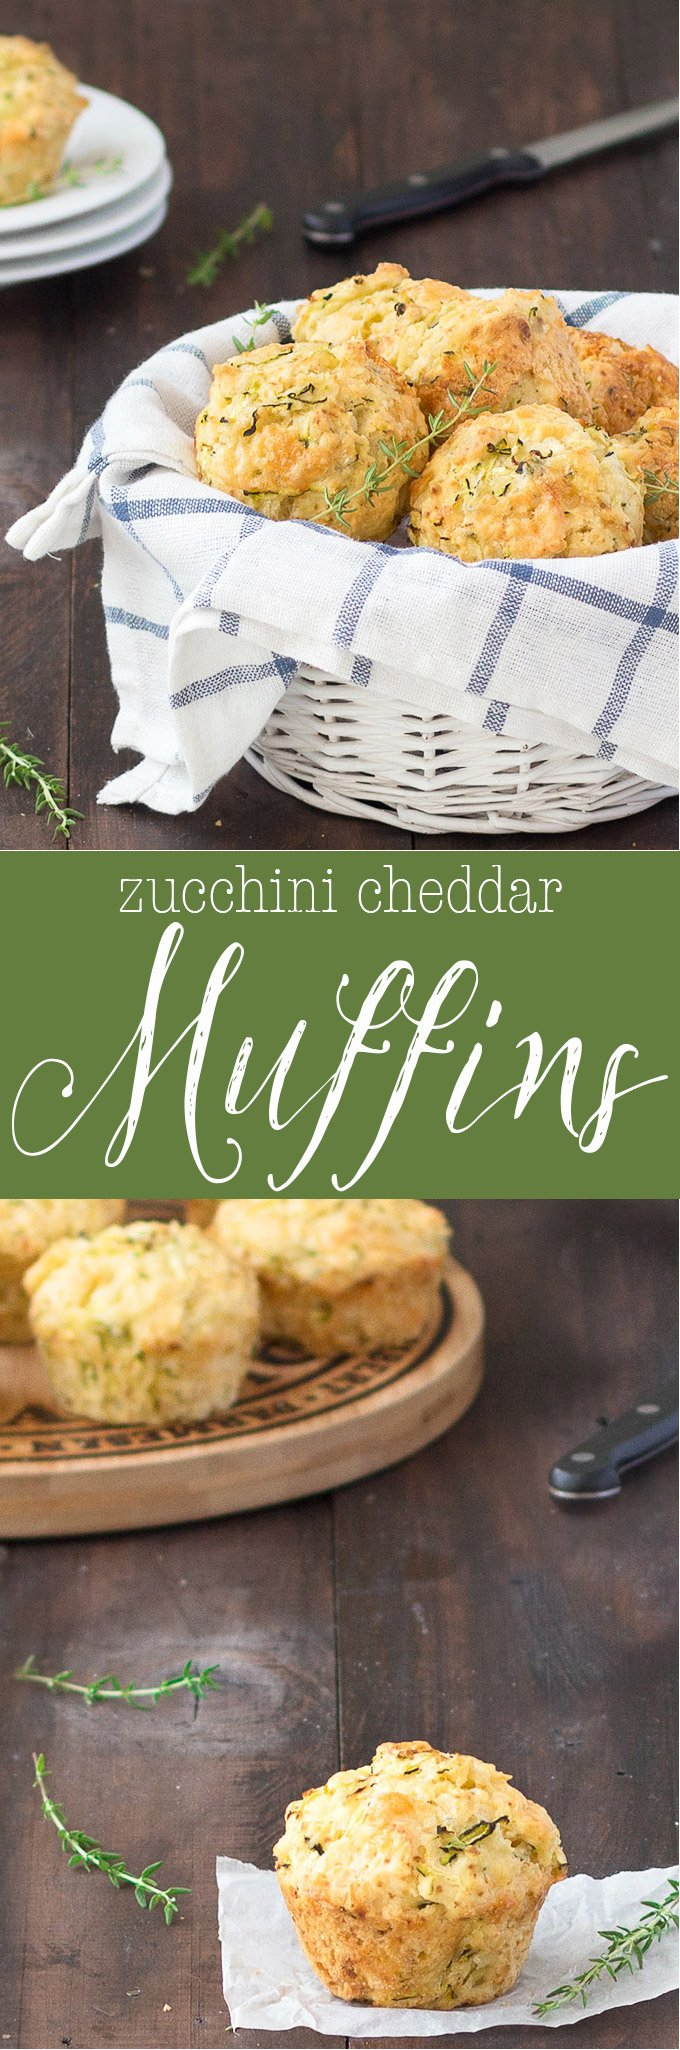 These zucchini cheddar cheese savory muffins are super delicious, moist and full of flavor. Serve them for a quick lunch with a salad, with a bowl of soup, for breakfast, and are great for the kids lunch boxes.